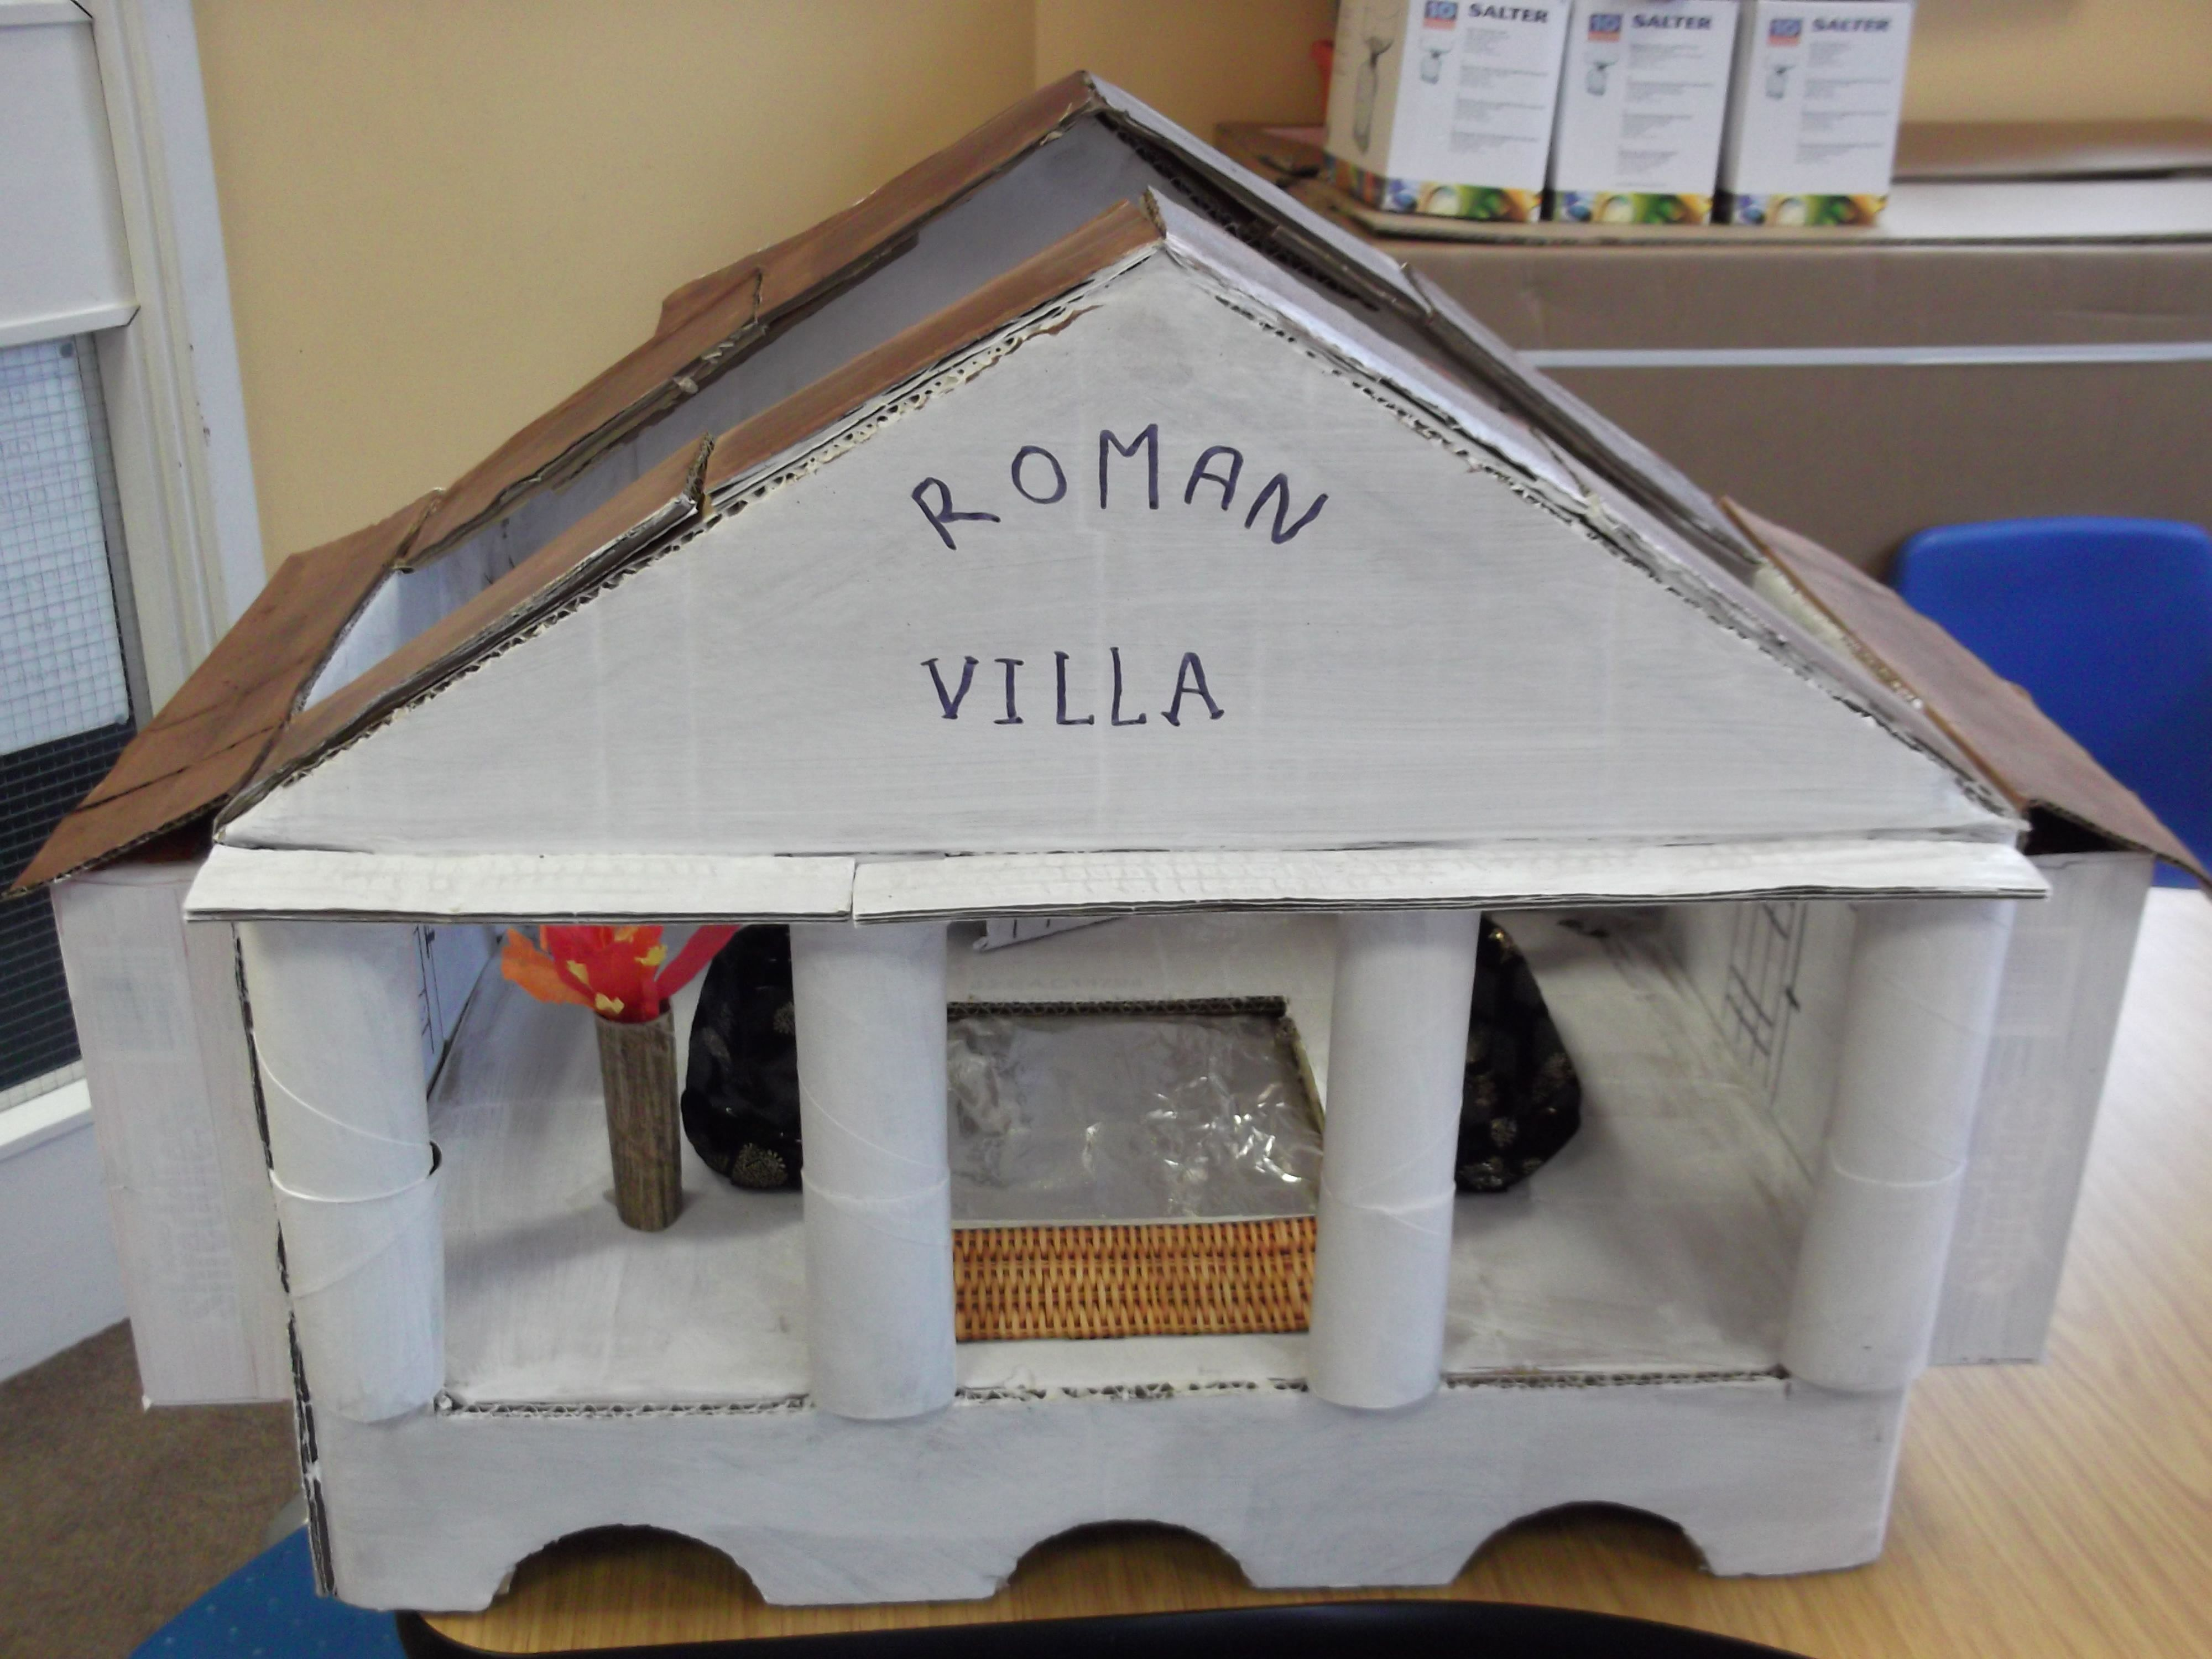 Make A Roman Villa George Palmer Primary Year Group Year 4